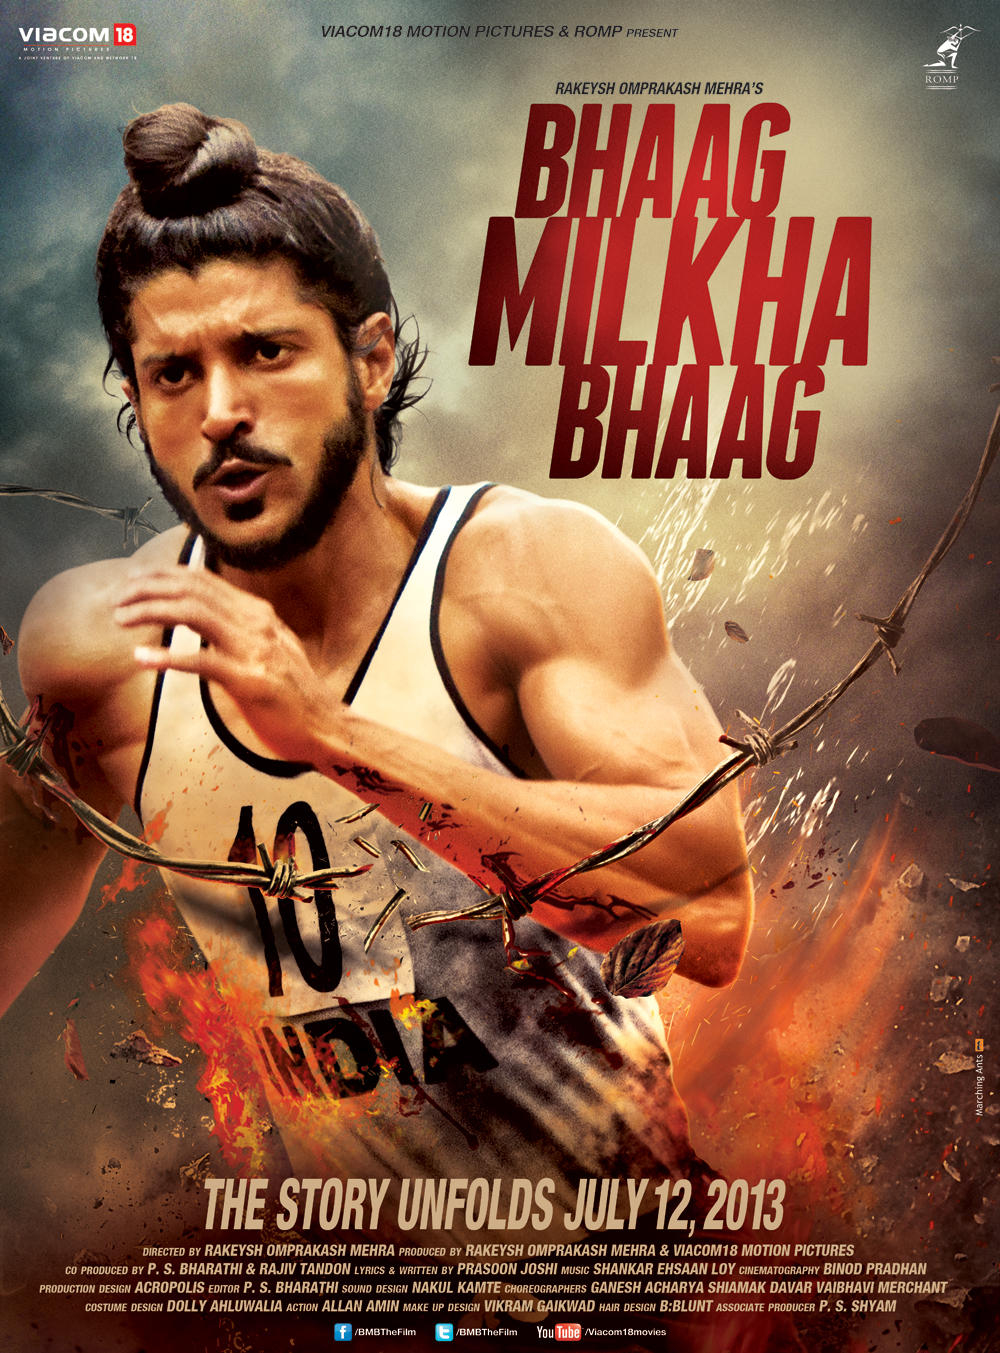 Bhaag Milkha Bhaag - Movie Poster #1 (Original)